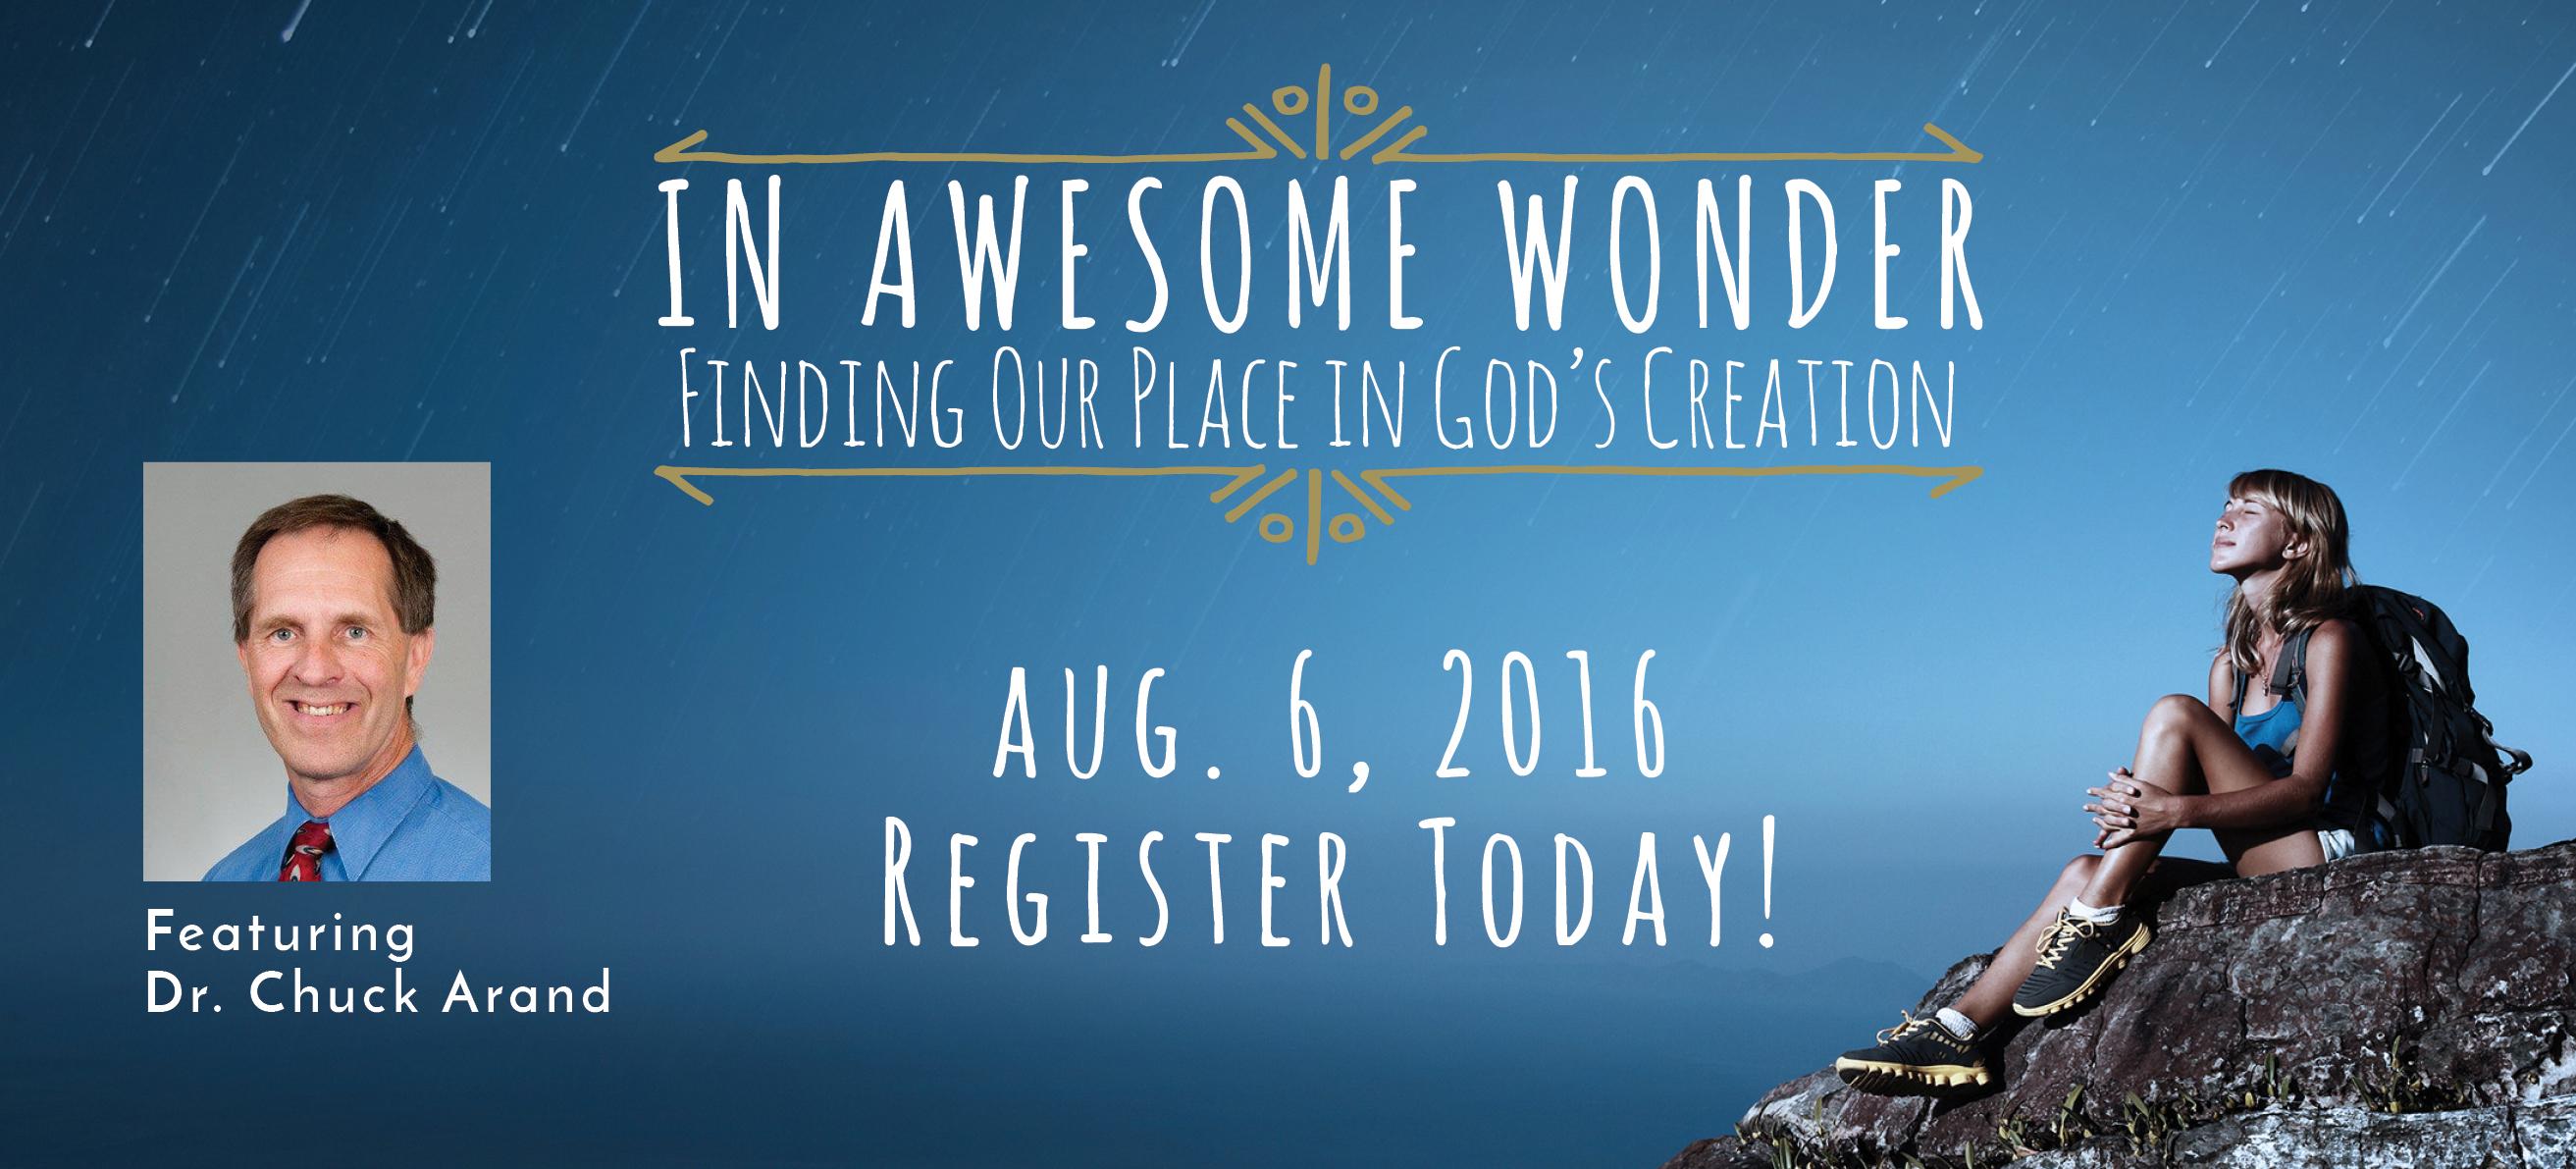 Summer Lay Bible Institute set for Aug. 6, 2016